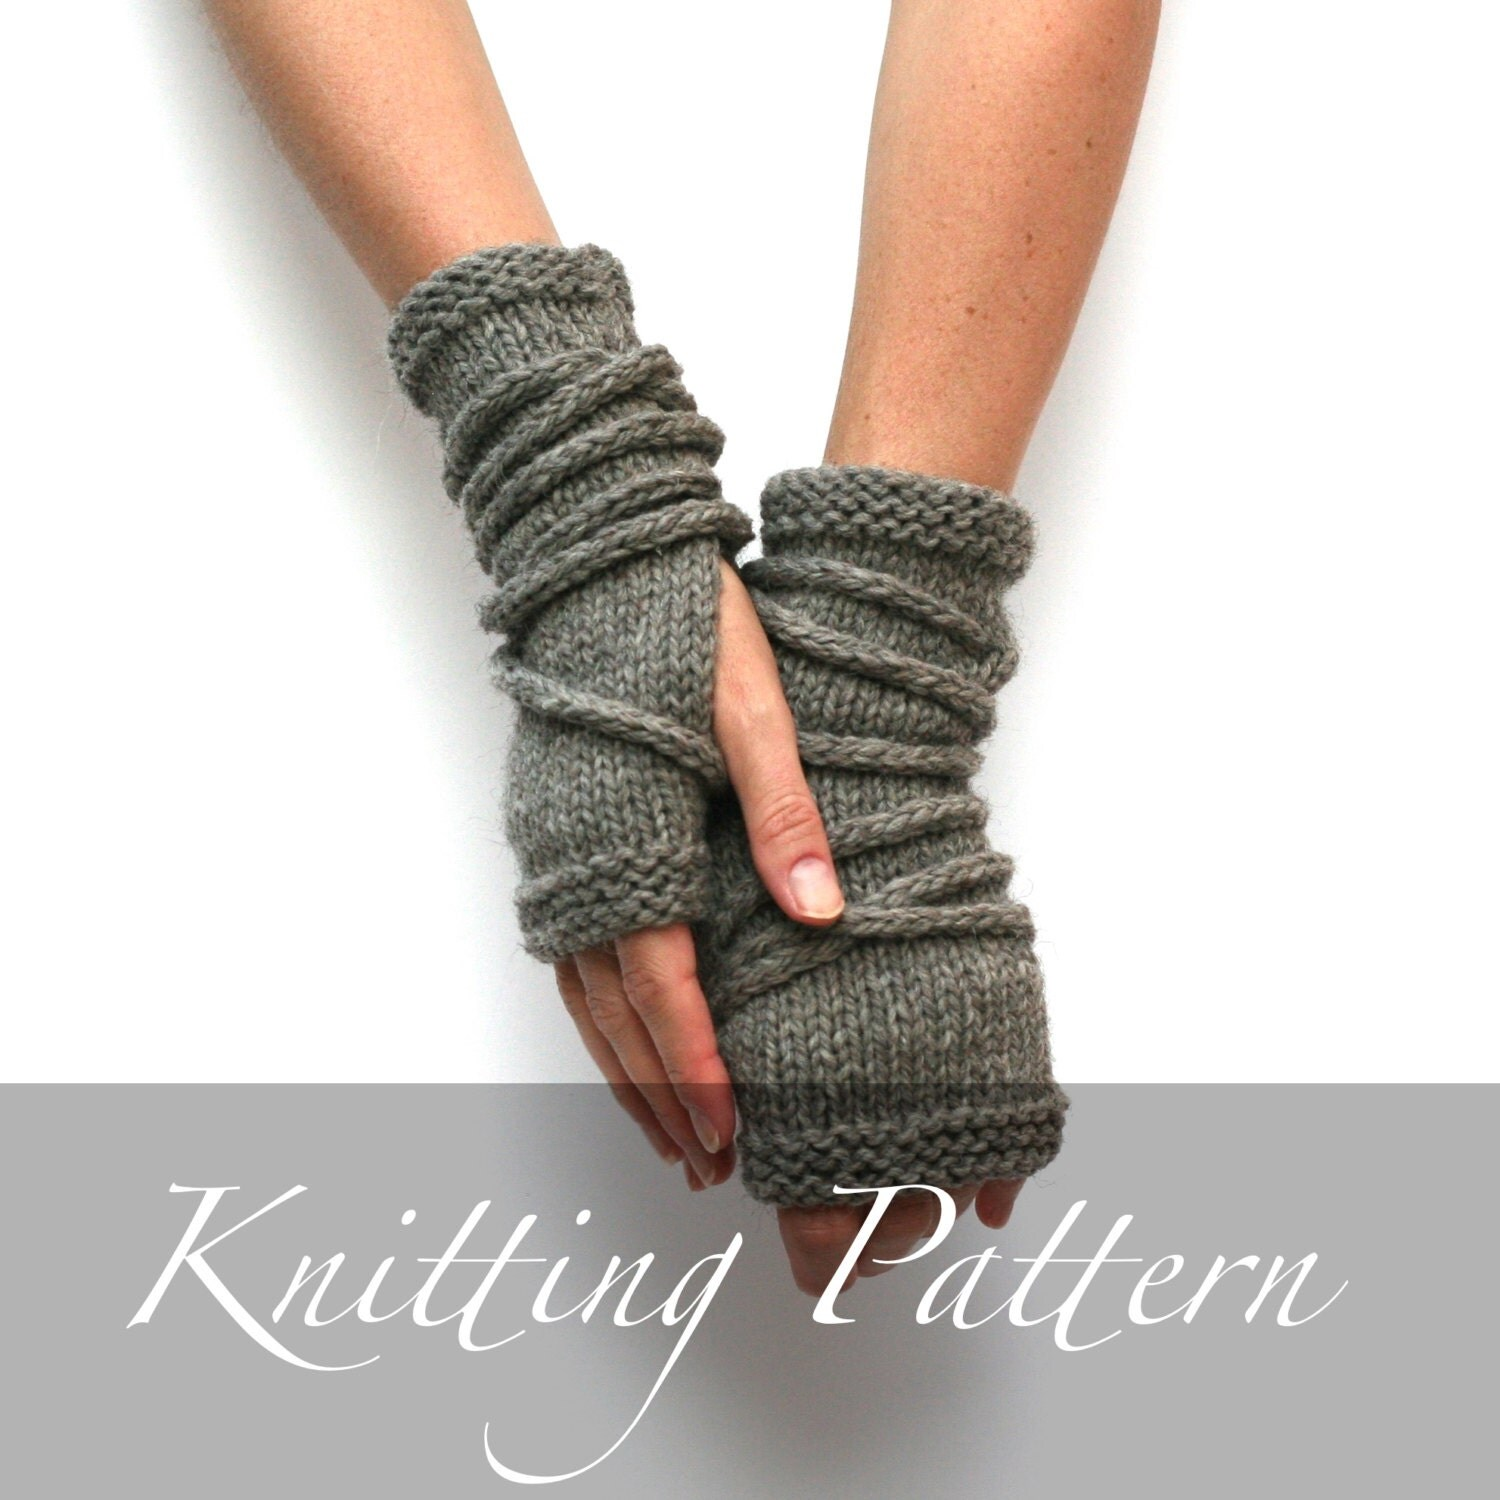 Knitting pattern wrap gauntlets fingerless gloves pattern zoom bankloansurffo Choice Image